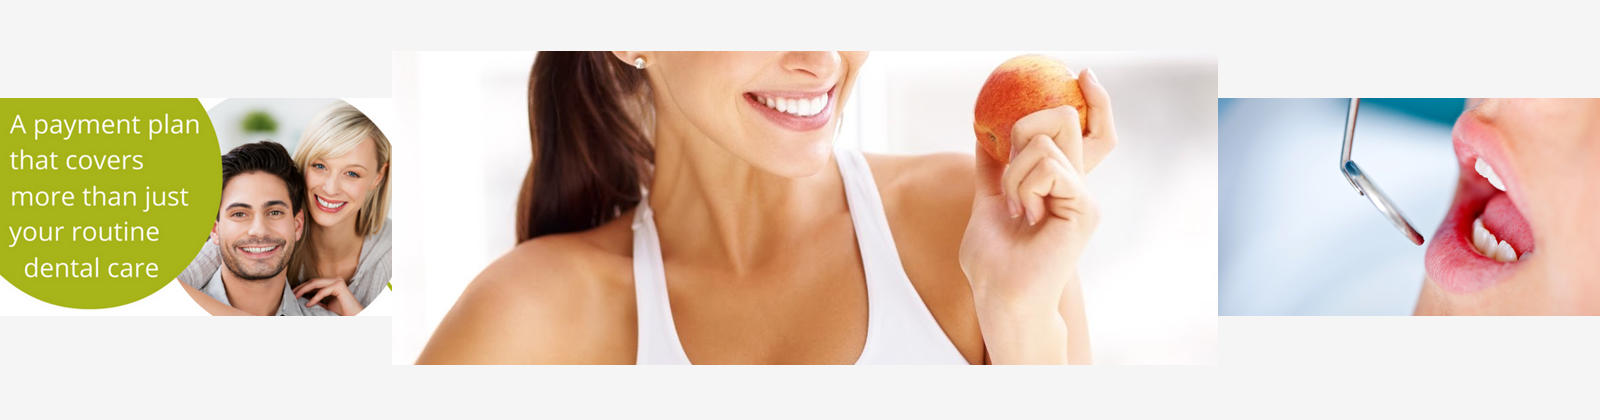 People with white teeth smiling and a lady holding an apple